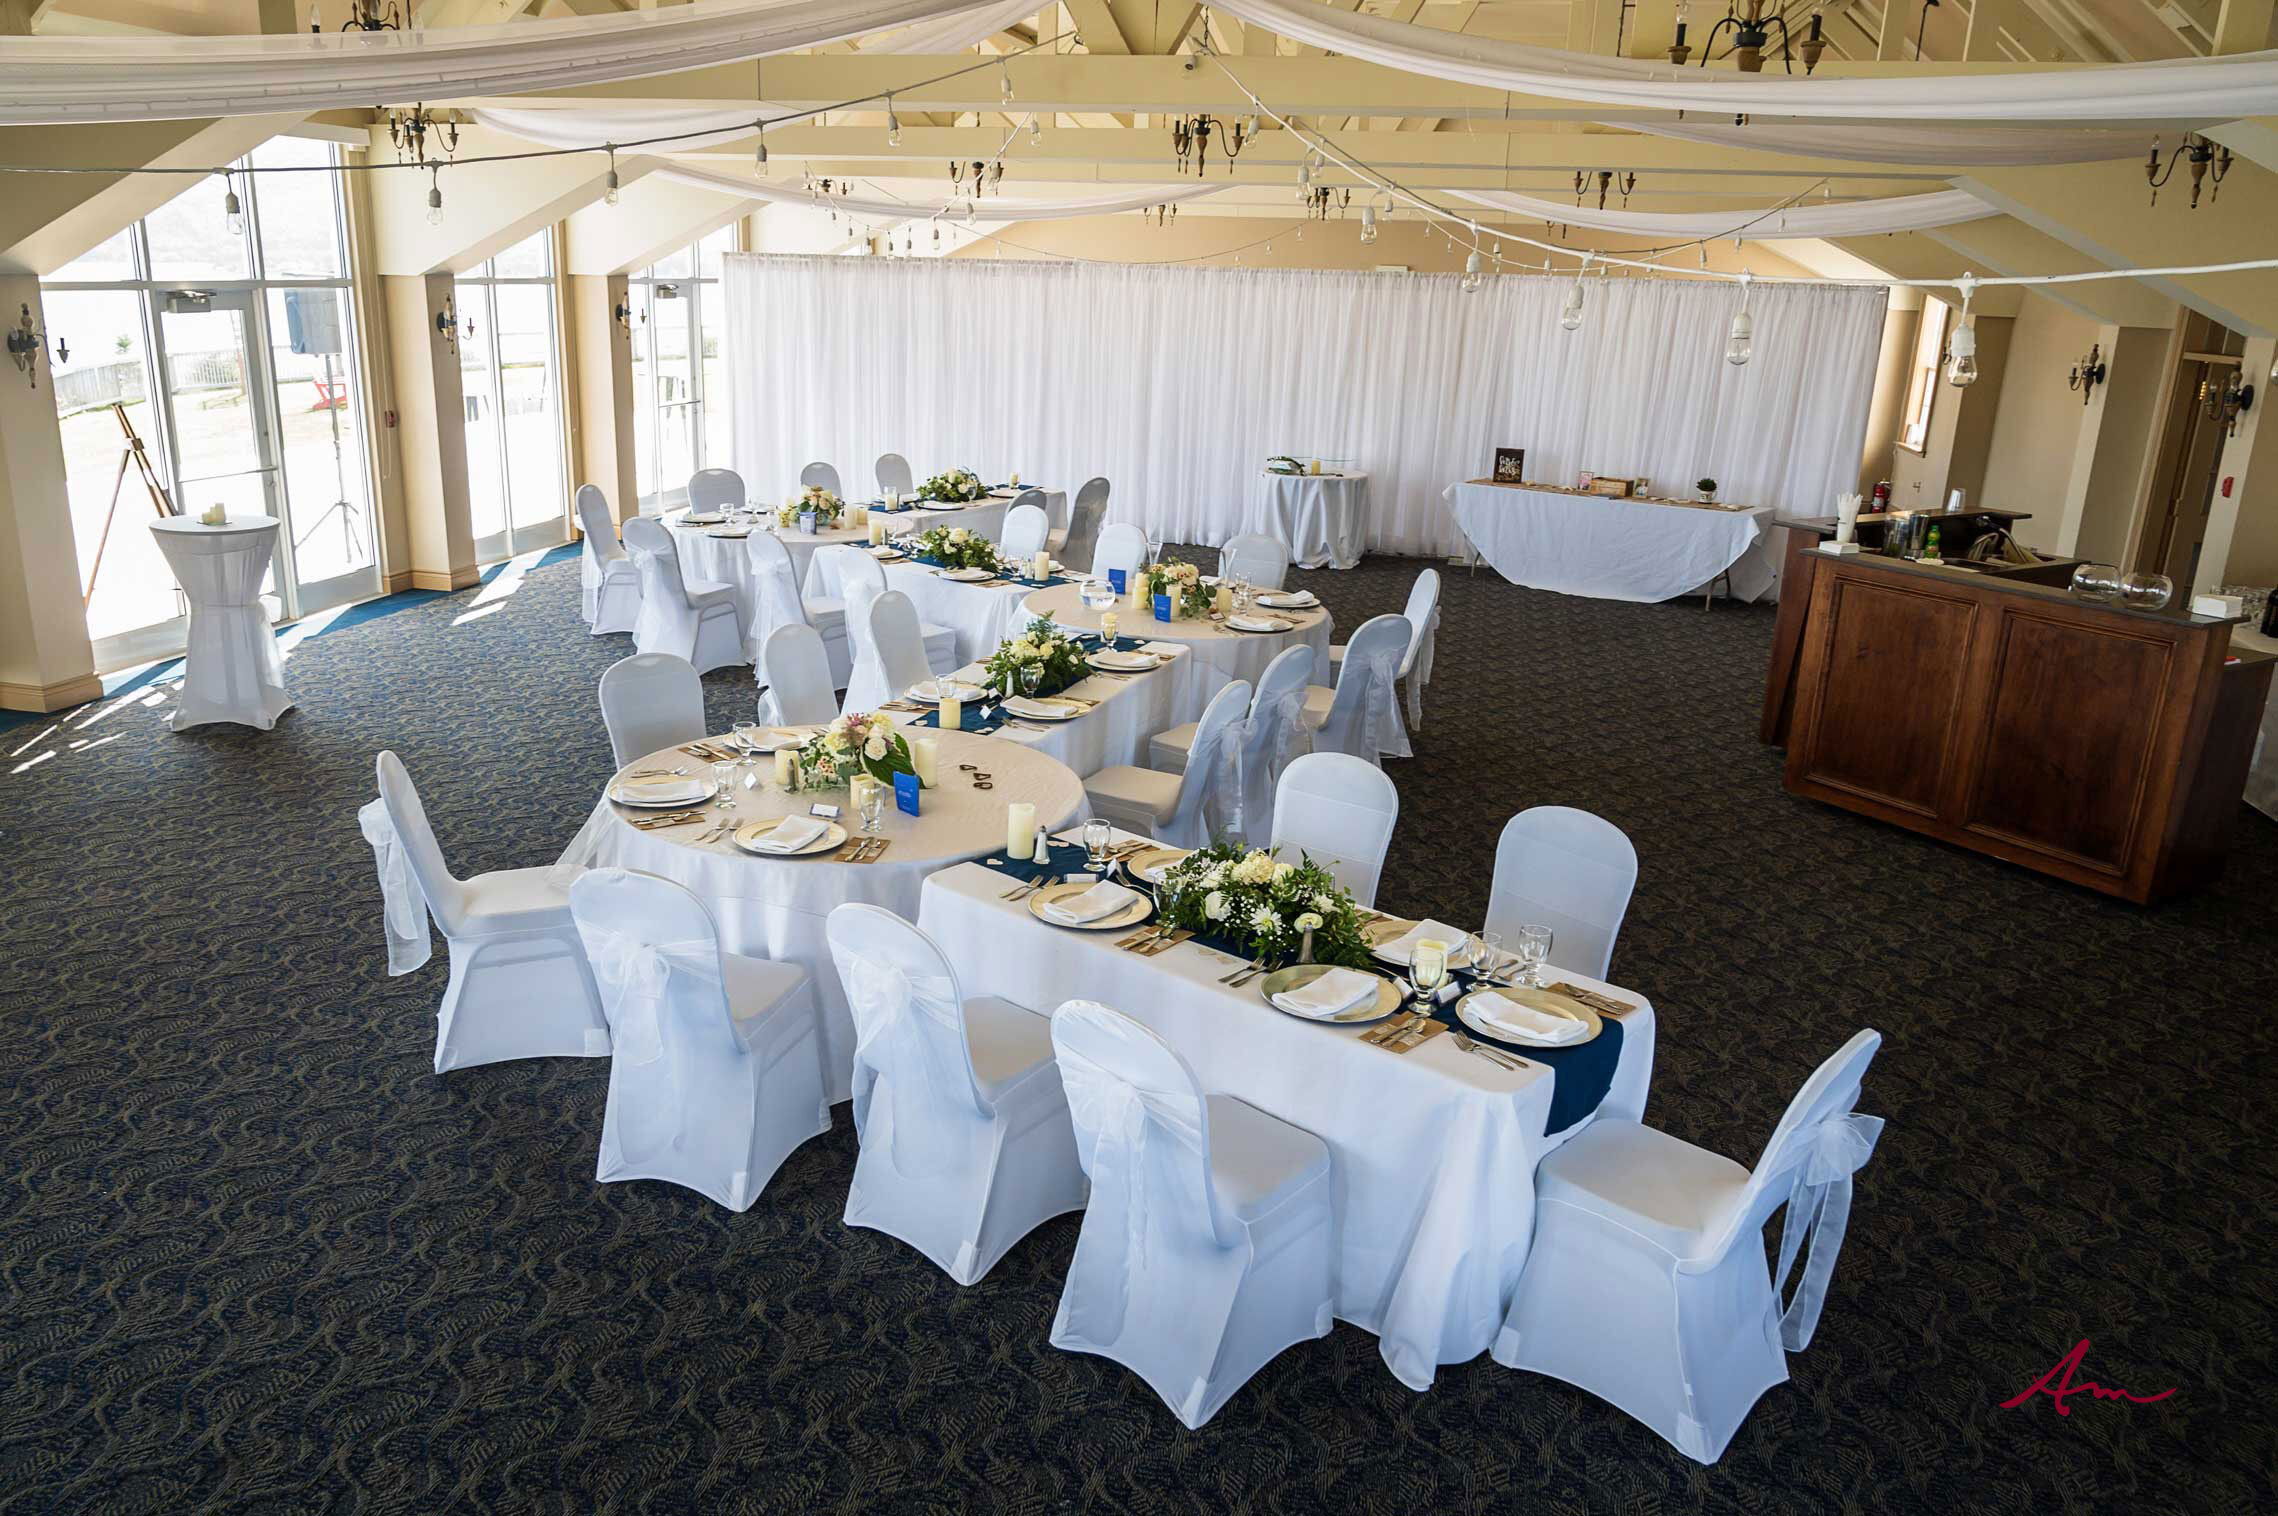 Such a great setup for an intimate wedding.